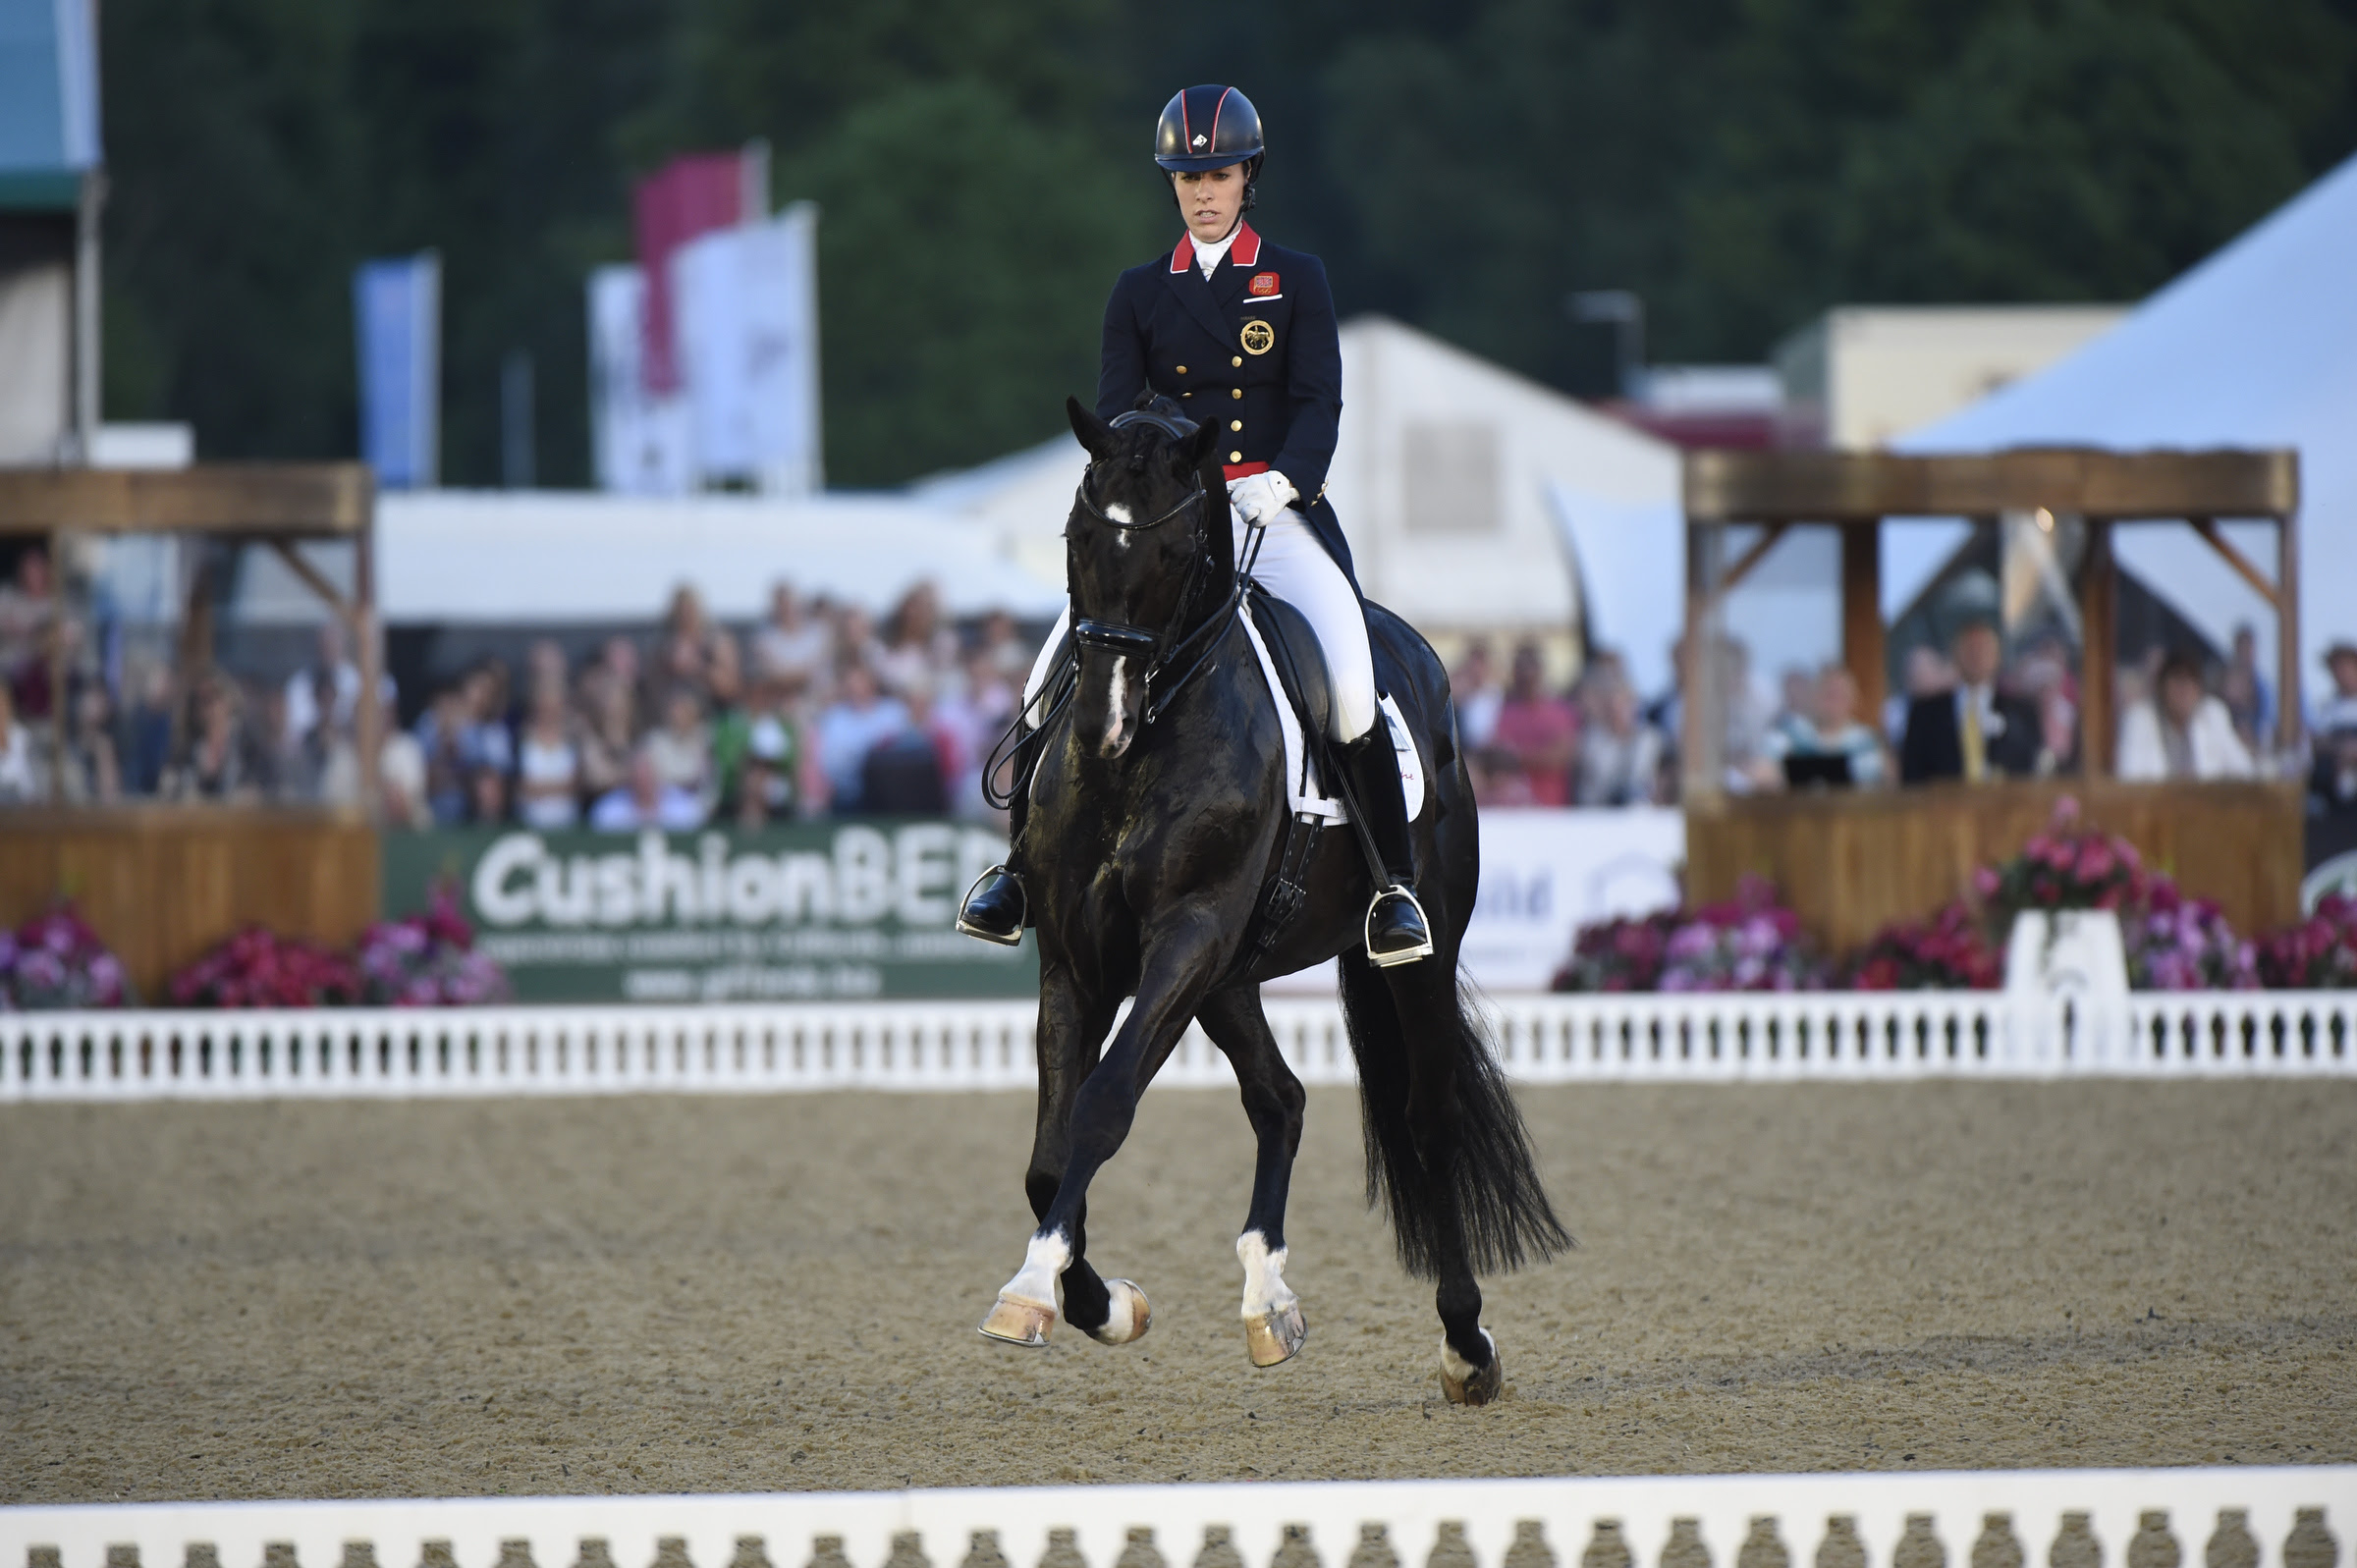 Charlotte Dujardin riding Uthopia in the dressage free style